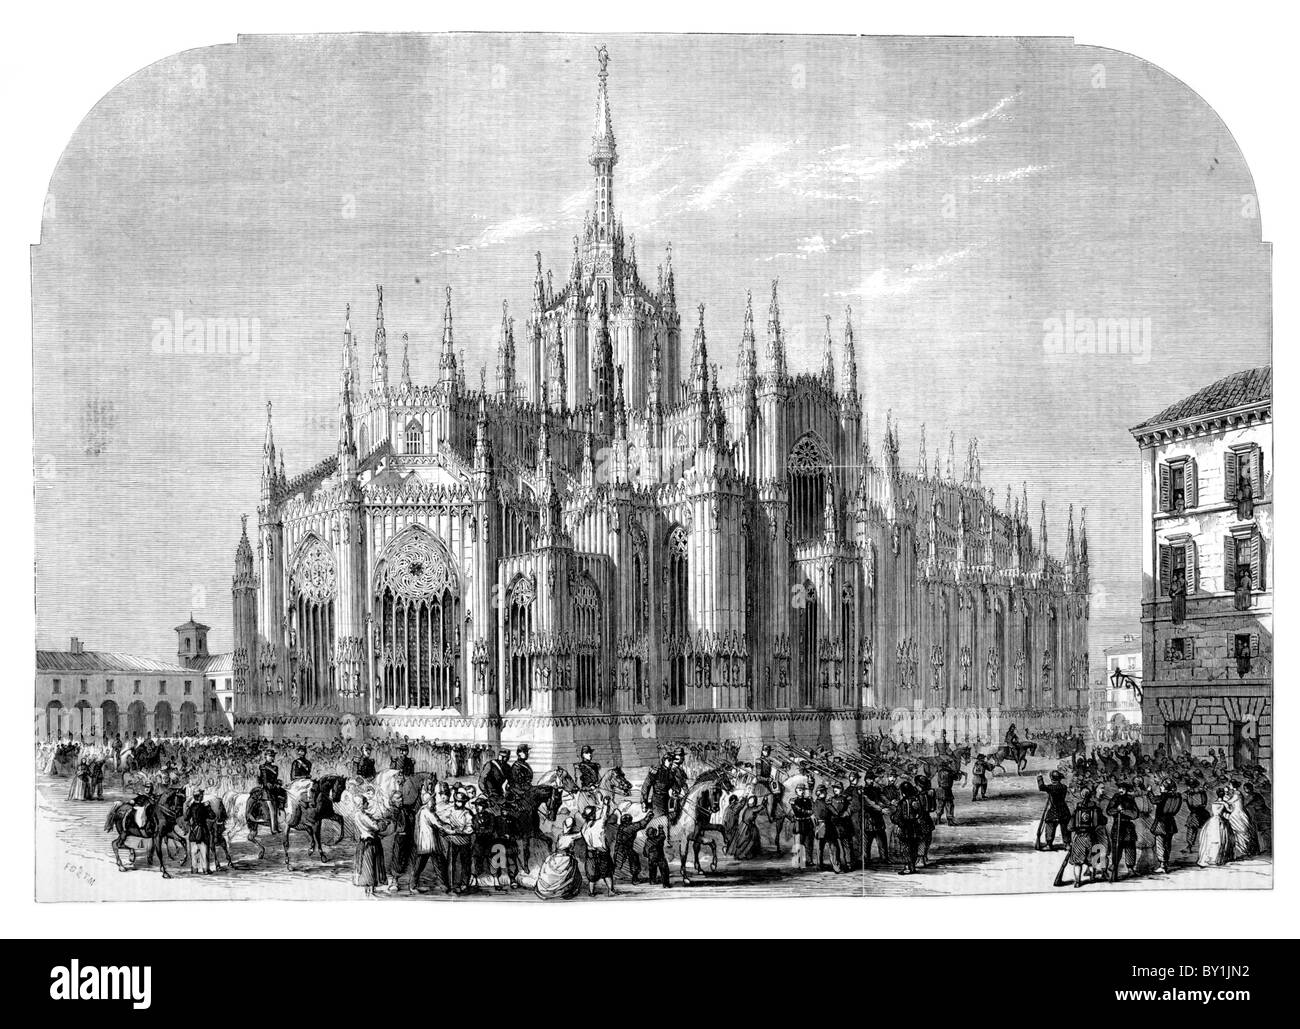 Milan Cathedral: 19th century black and white illustration; From The London Illustrated News - Stock Image